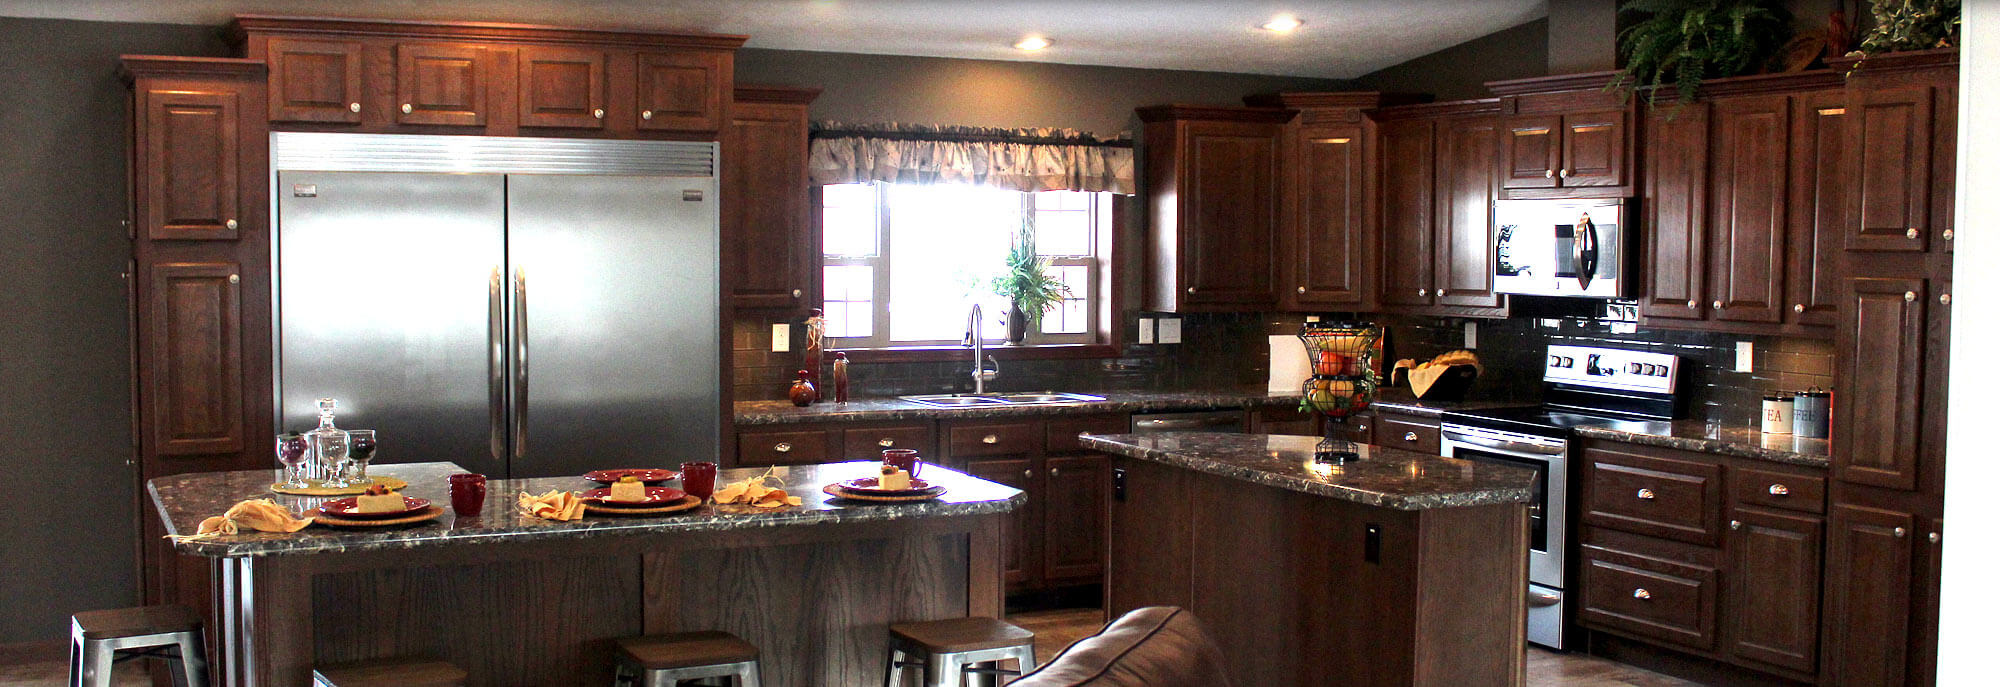 Custom gourmet kitchen with granite countertops